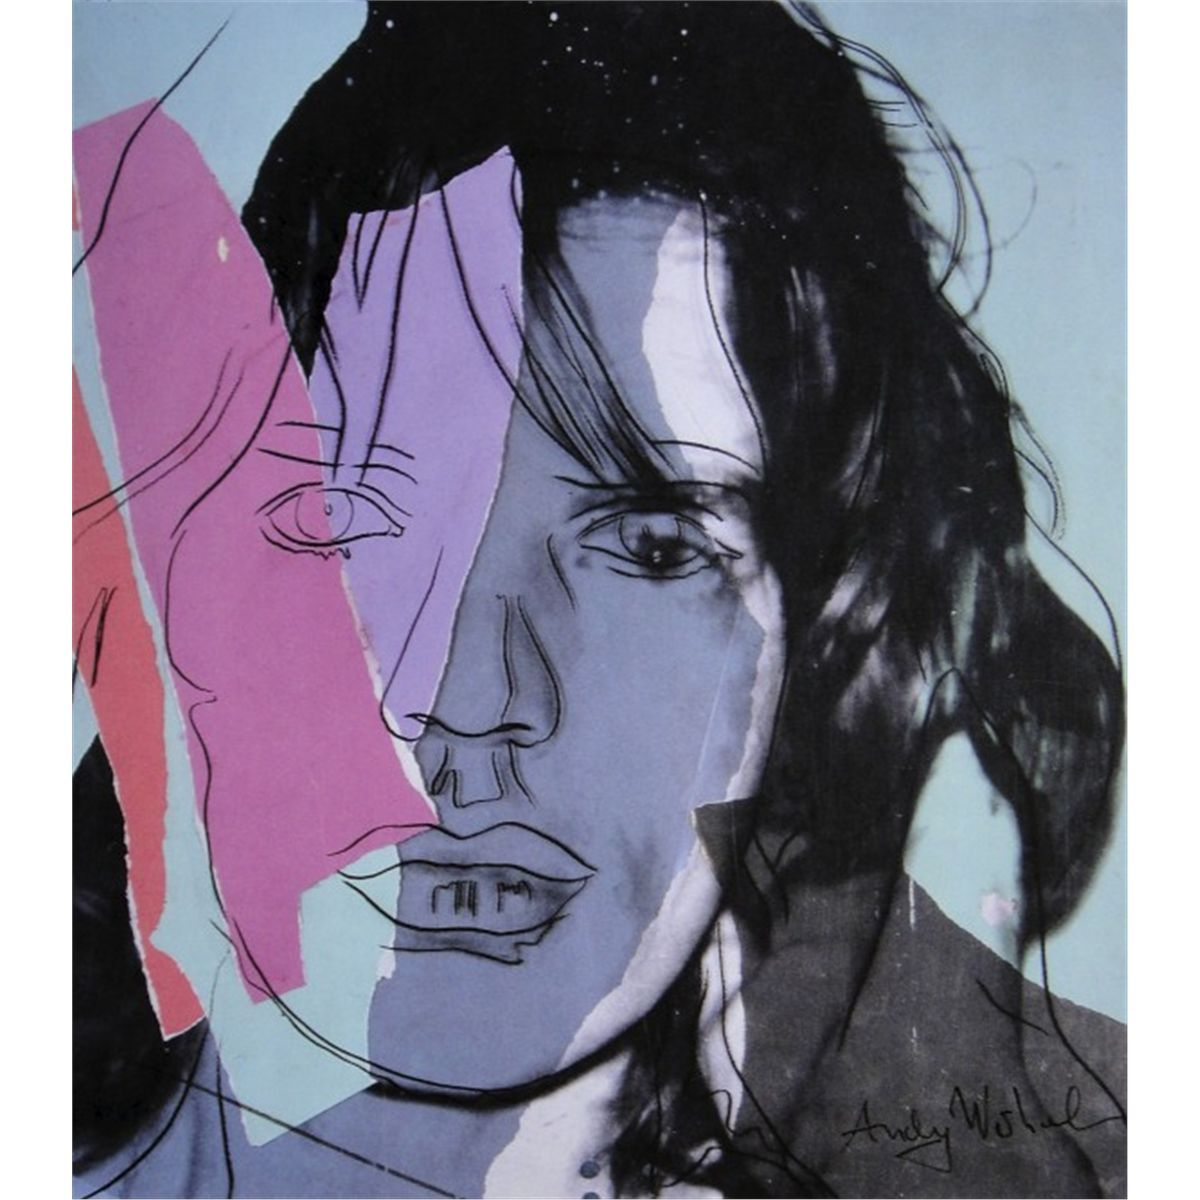 """Mick"" by Andy Warhol (1975)"